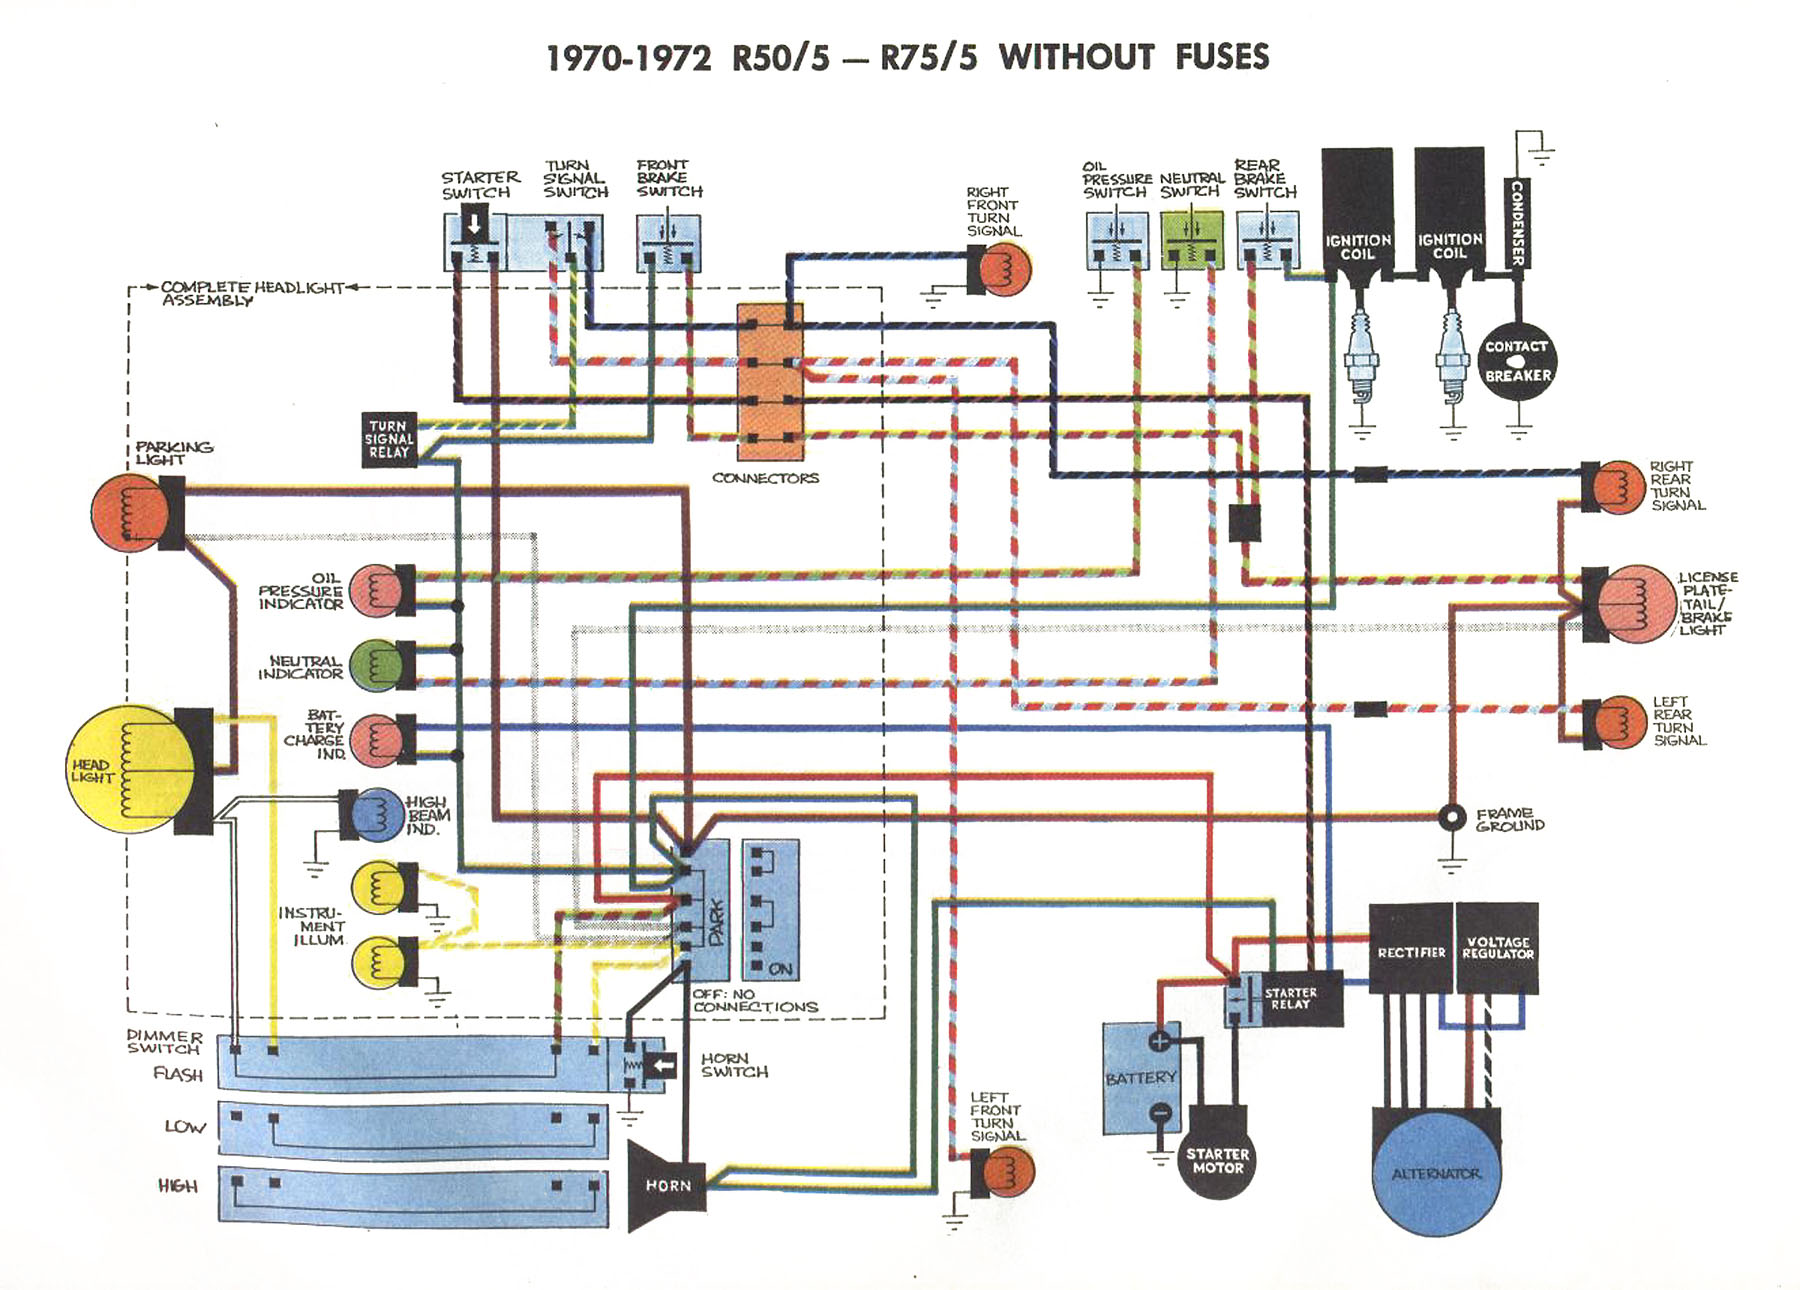 5_unfused_schematic 5 united articles wiring diagrams bmw r100rs gauge wiring diagram at cos-gaming.co